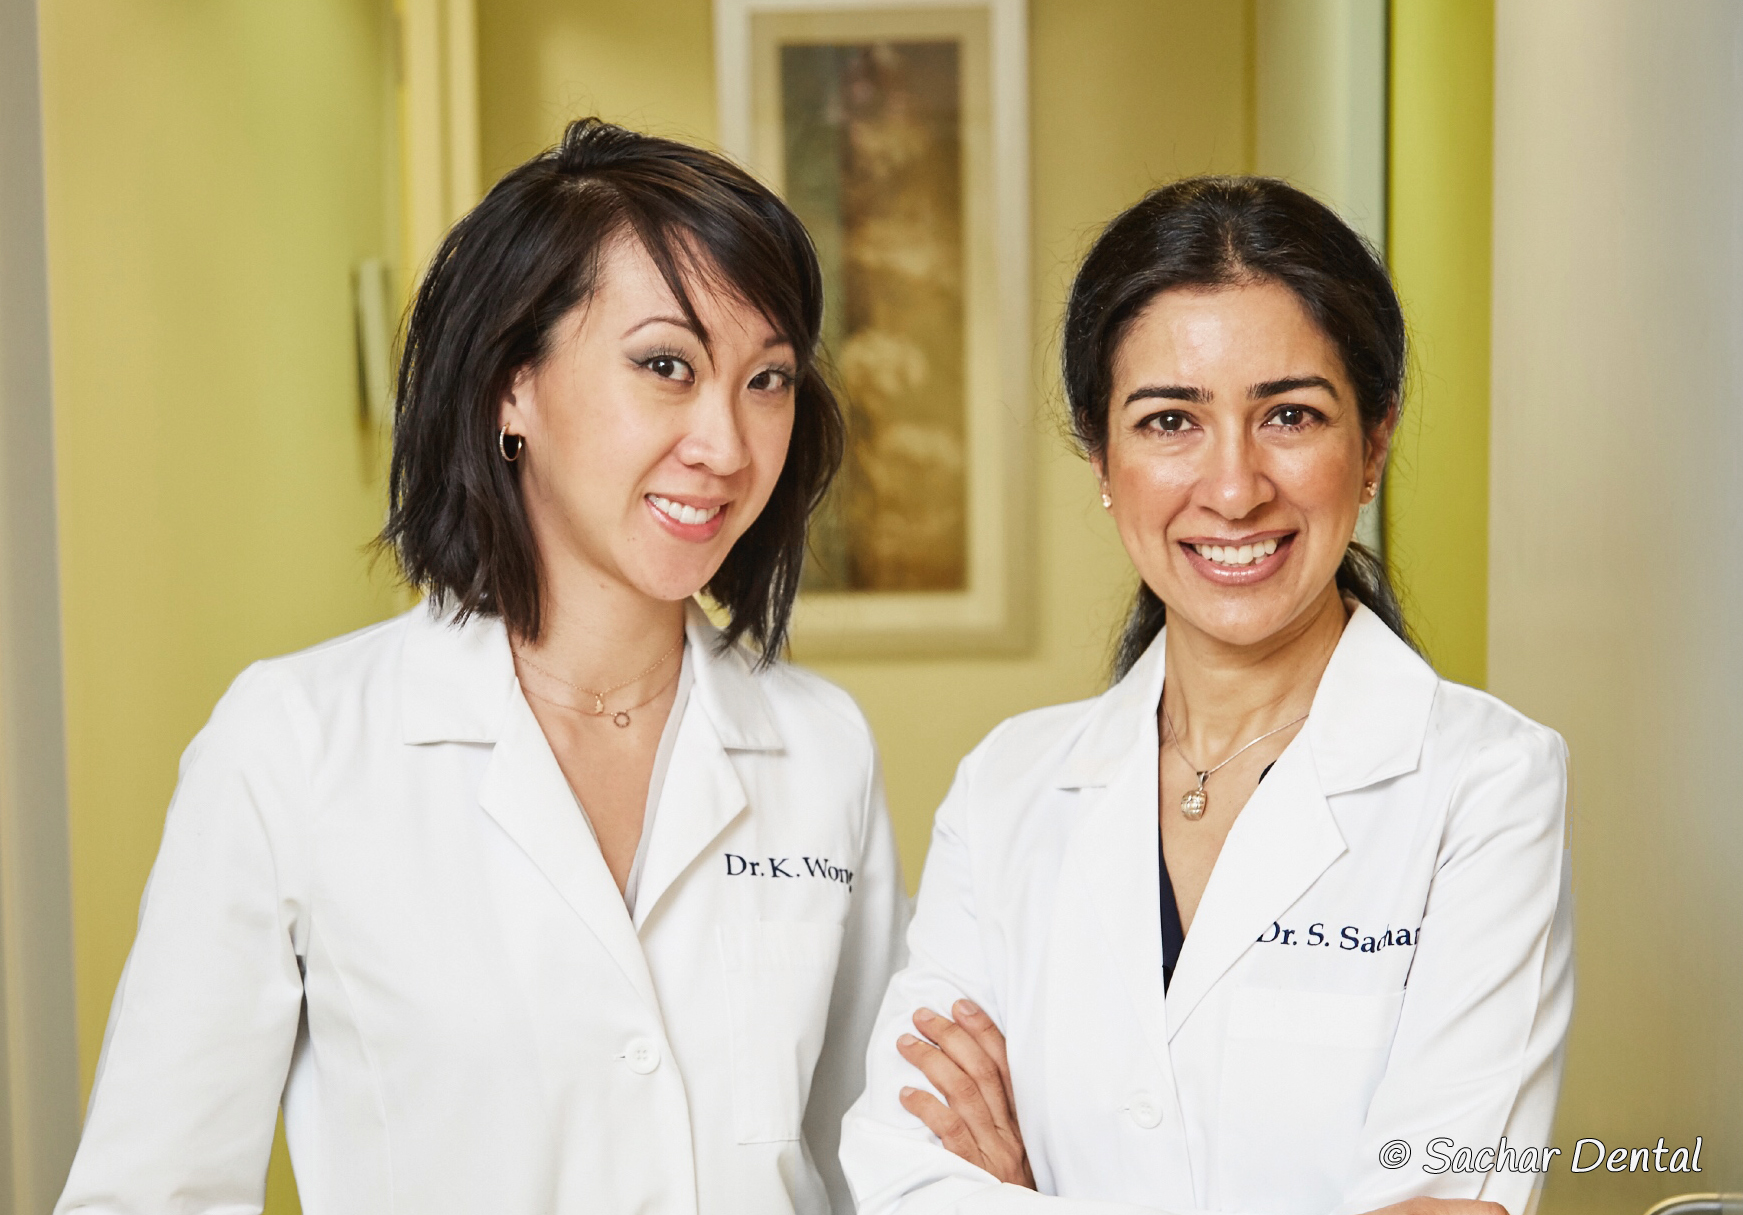 Top NYC Dentists Dr Wong & Dr Sachar